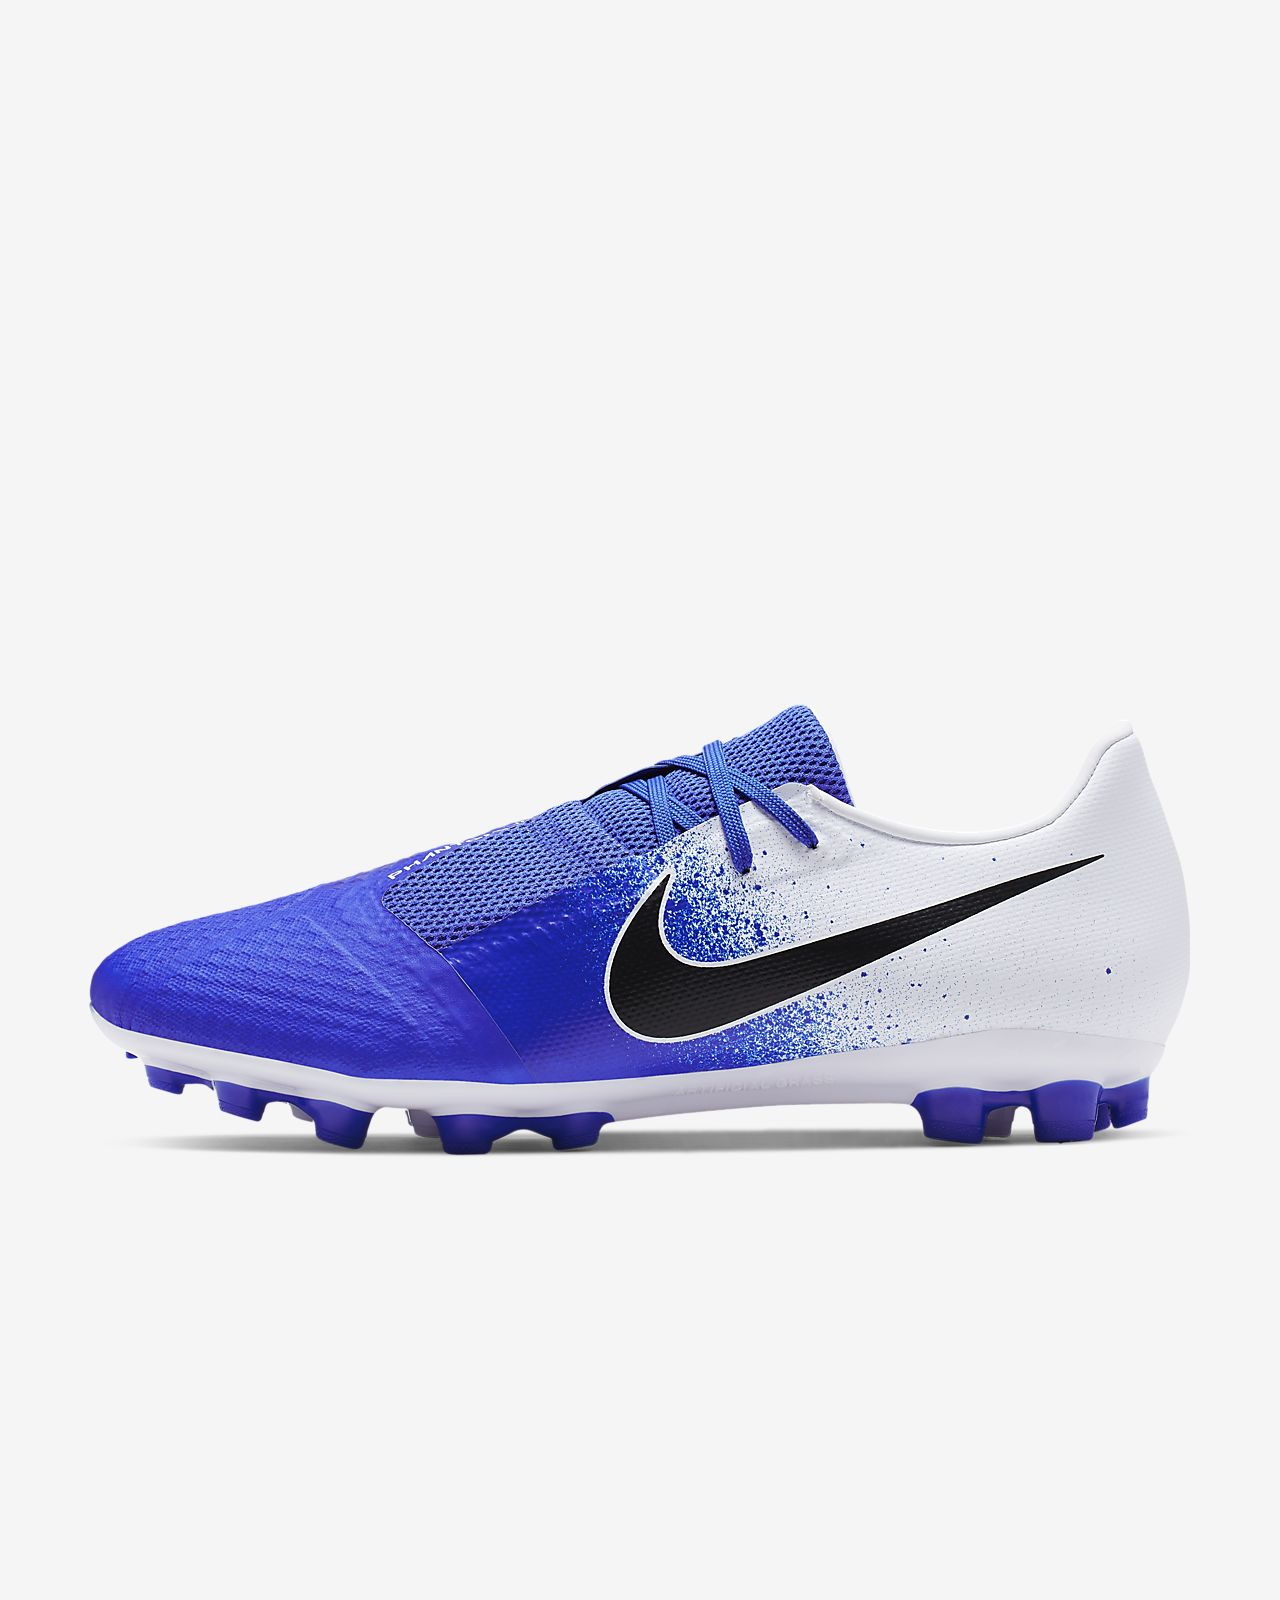 053b57d53aa36 Nike Phantom Venom Academy AG-R Artificial-Grass Football Boot. Nike ...